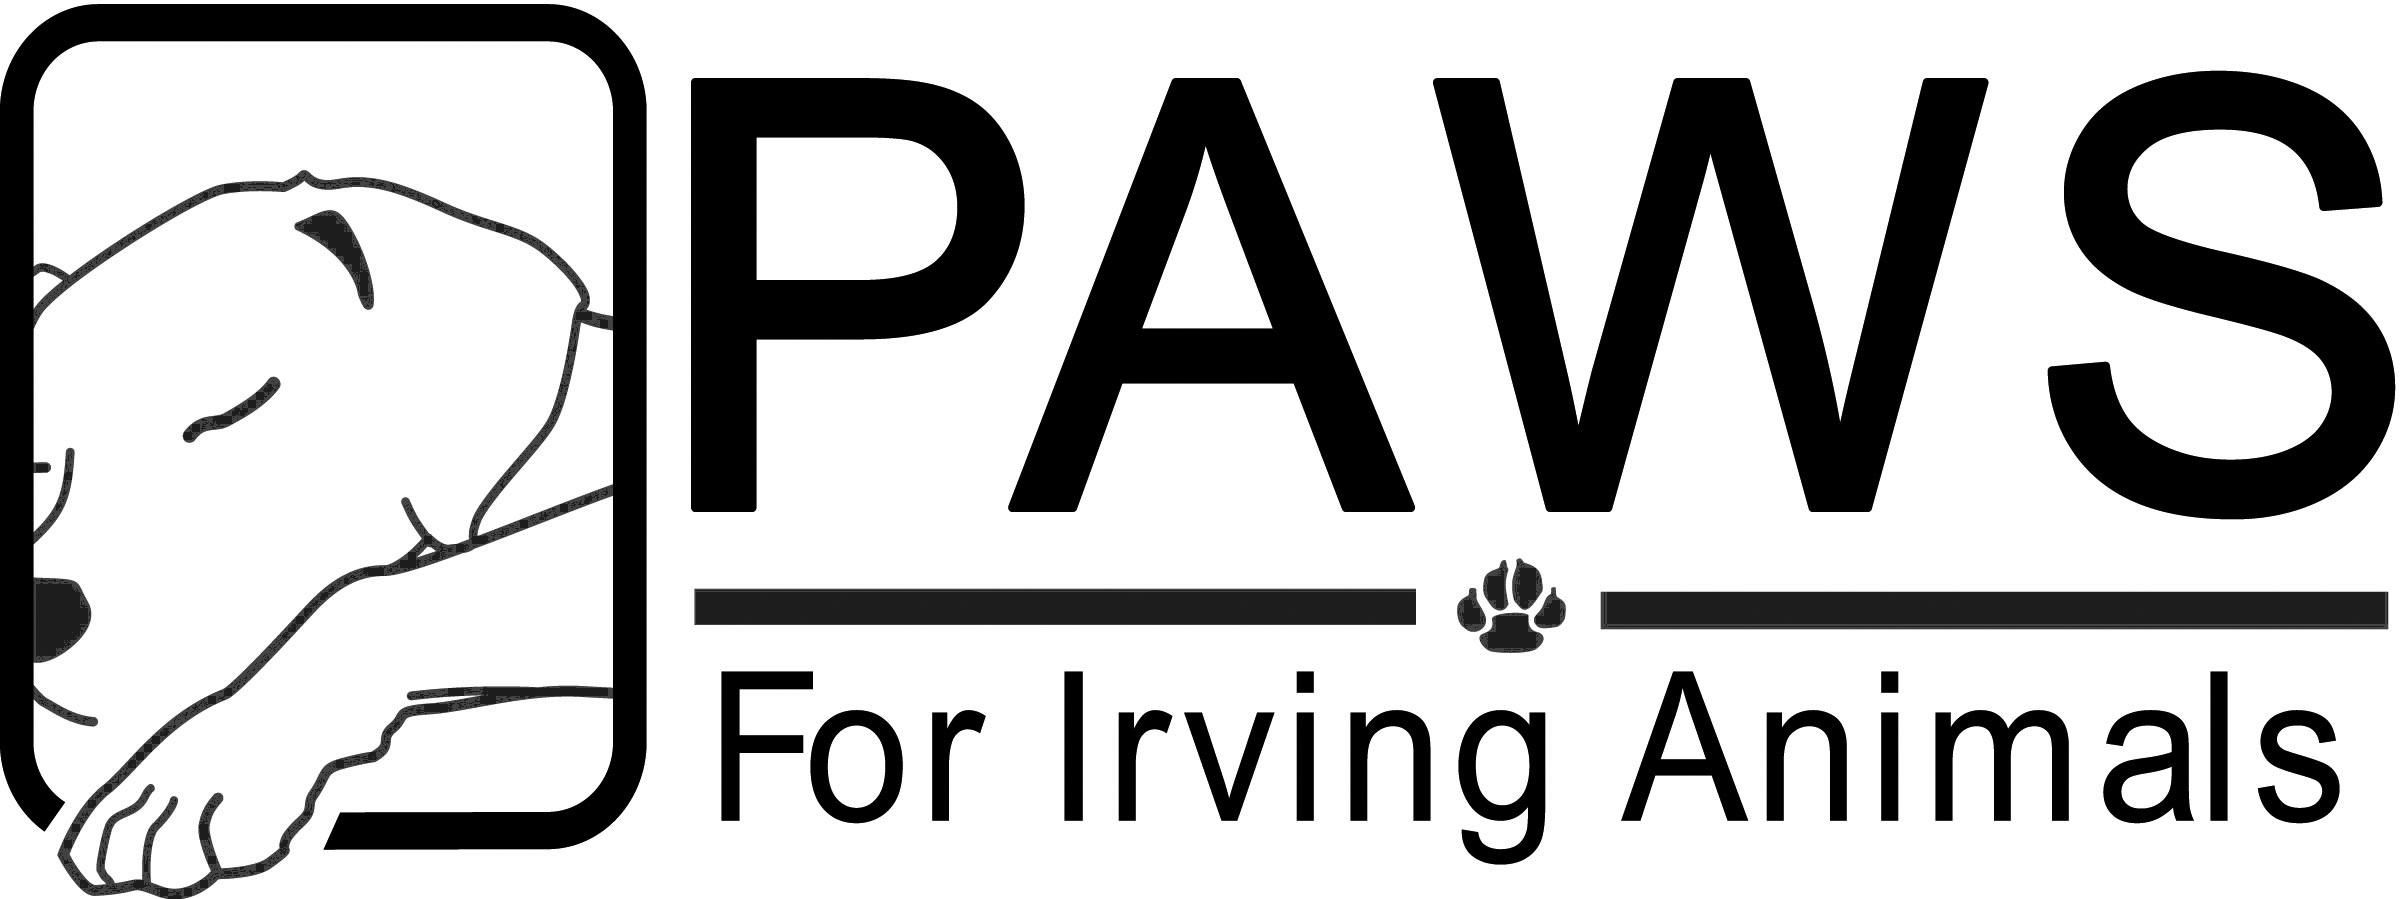 PAWS for Irving Animals